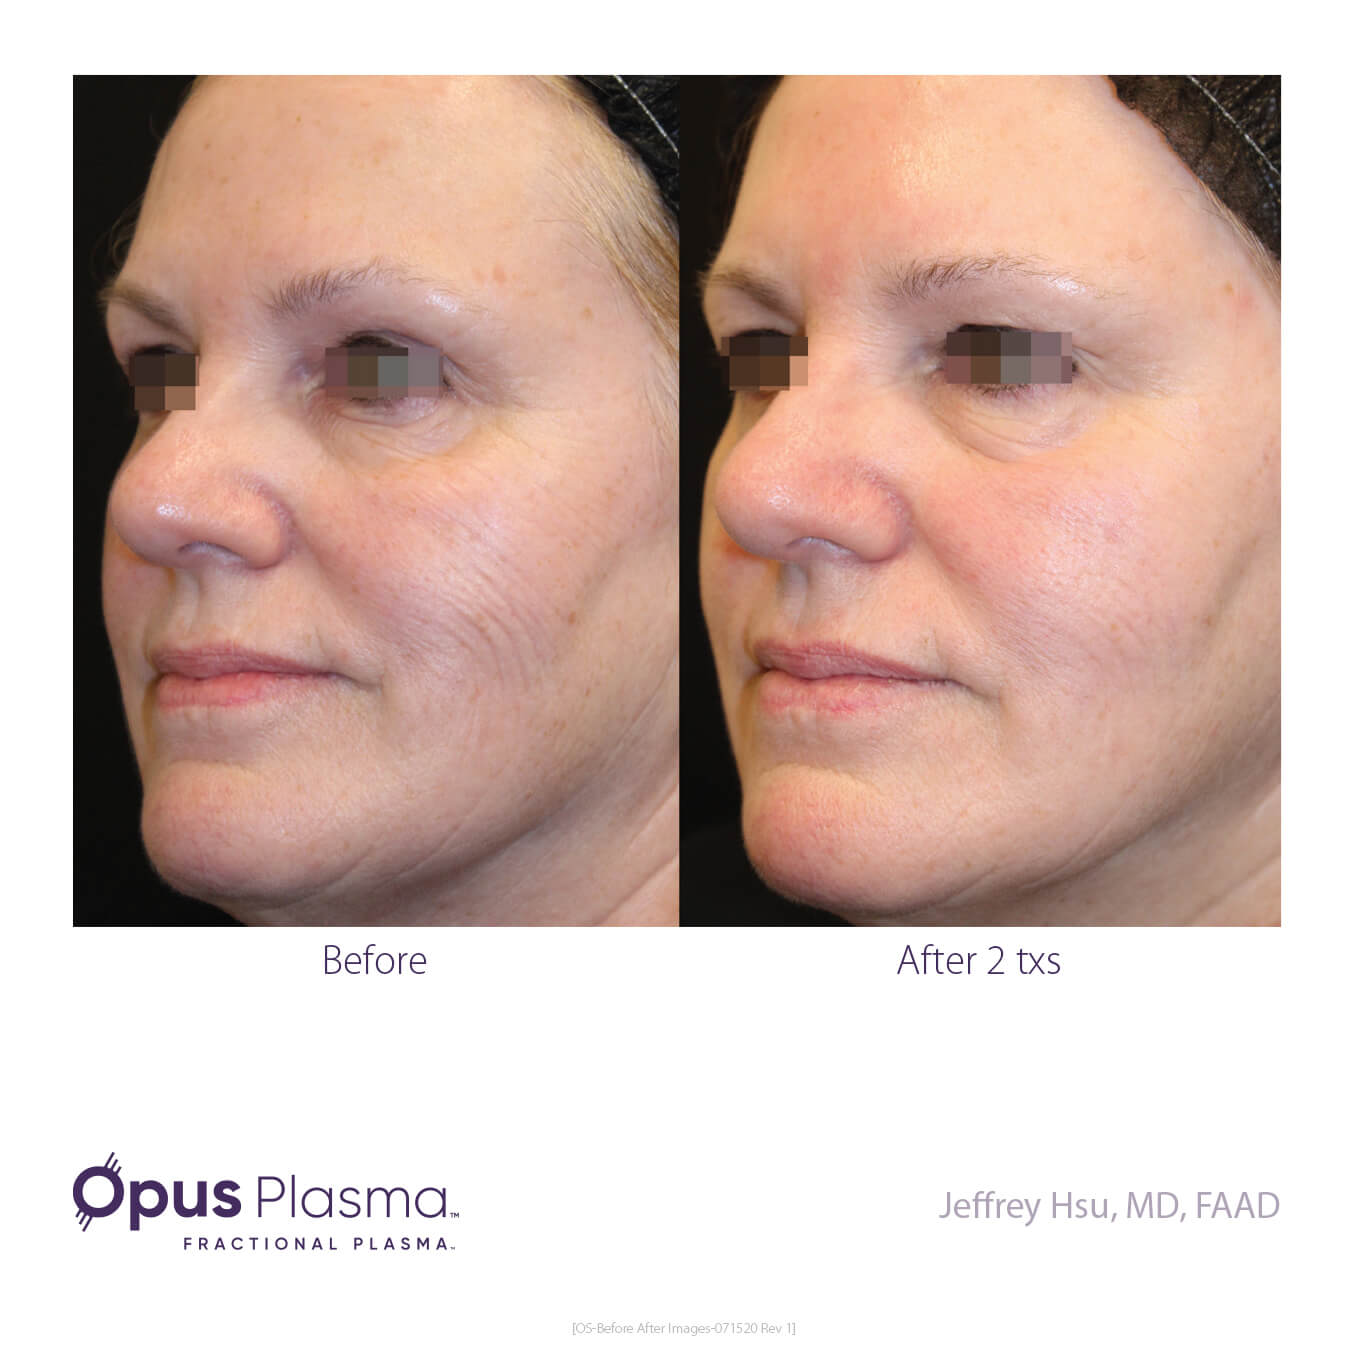 Opus-Before_and_After-B2C-4